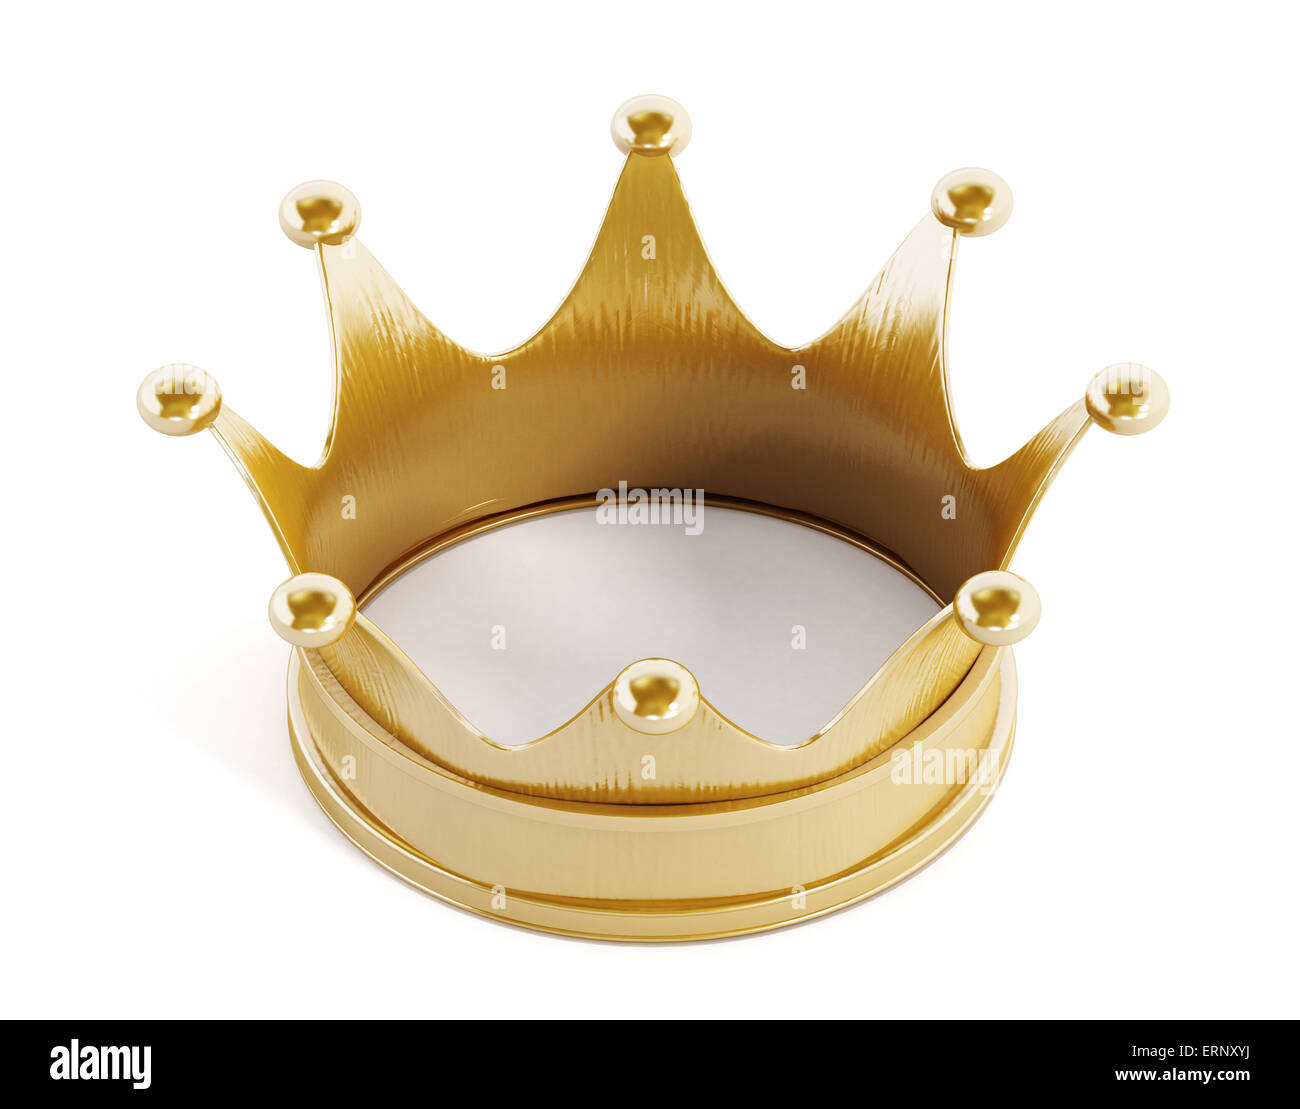 Gold crown isolated on white - Stock Image